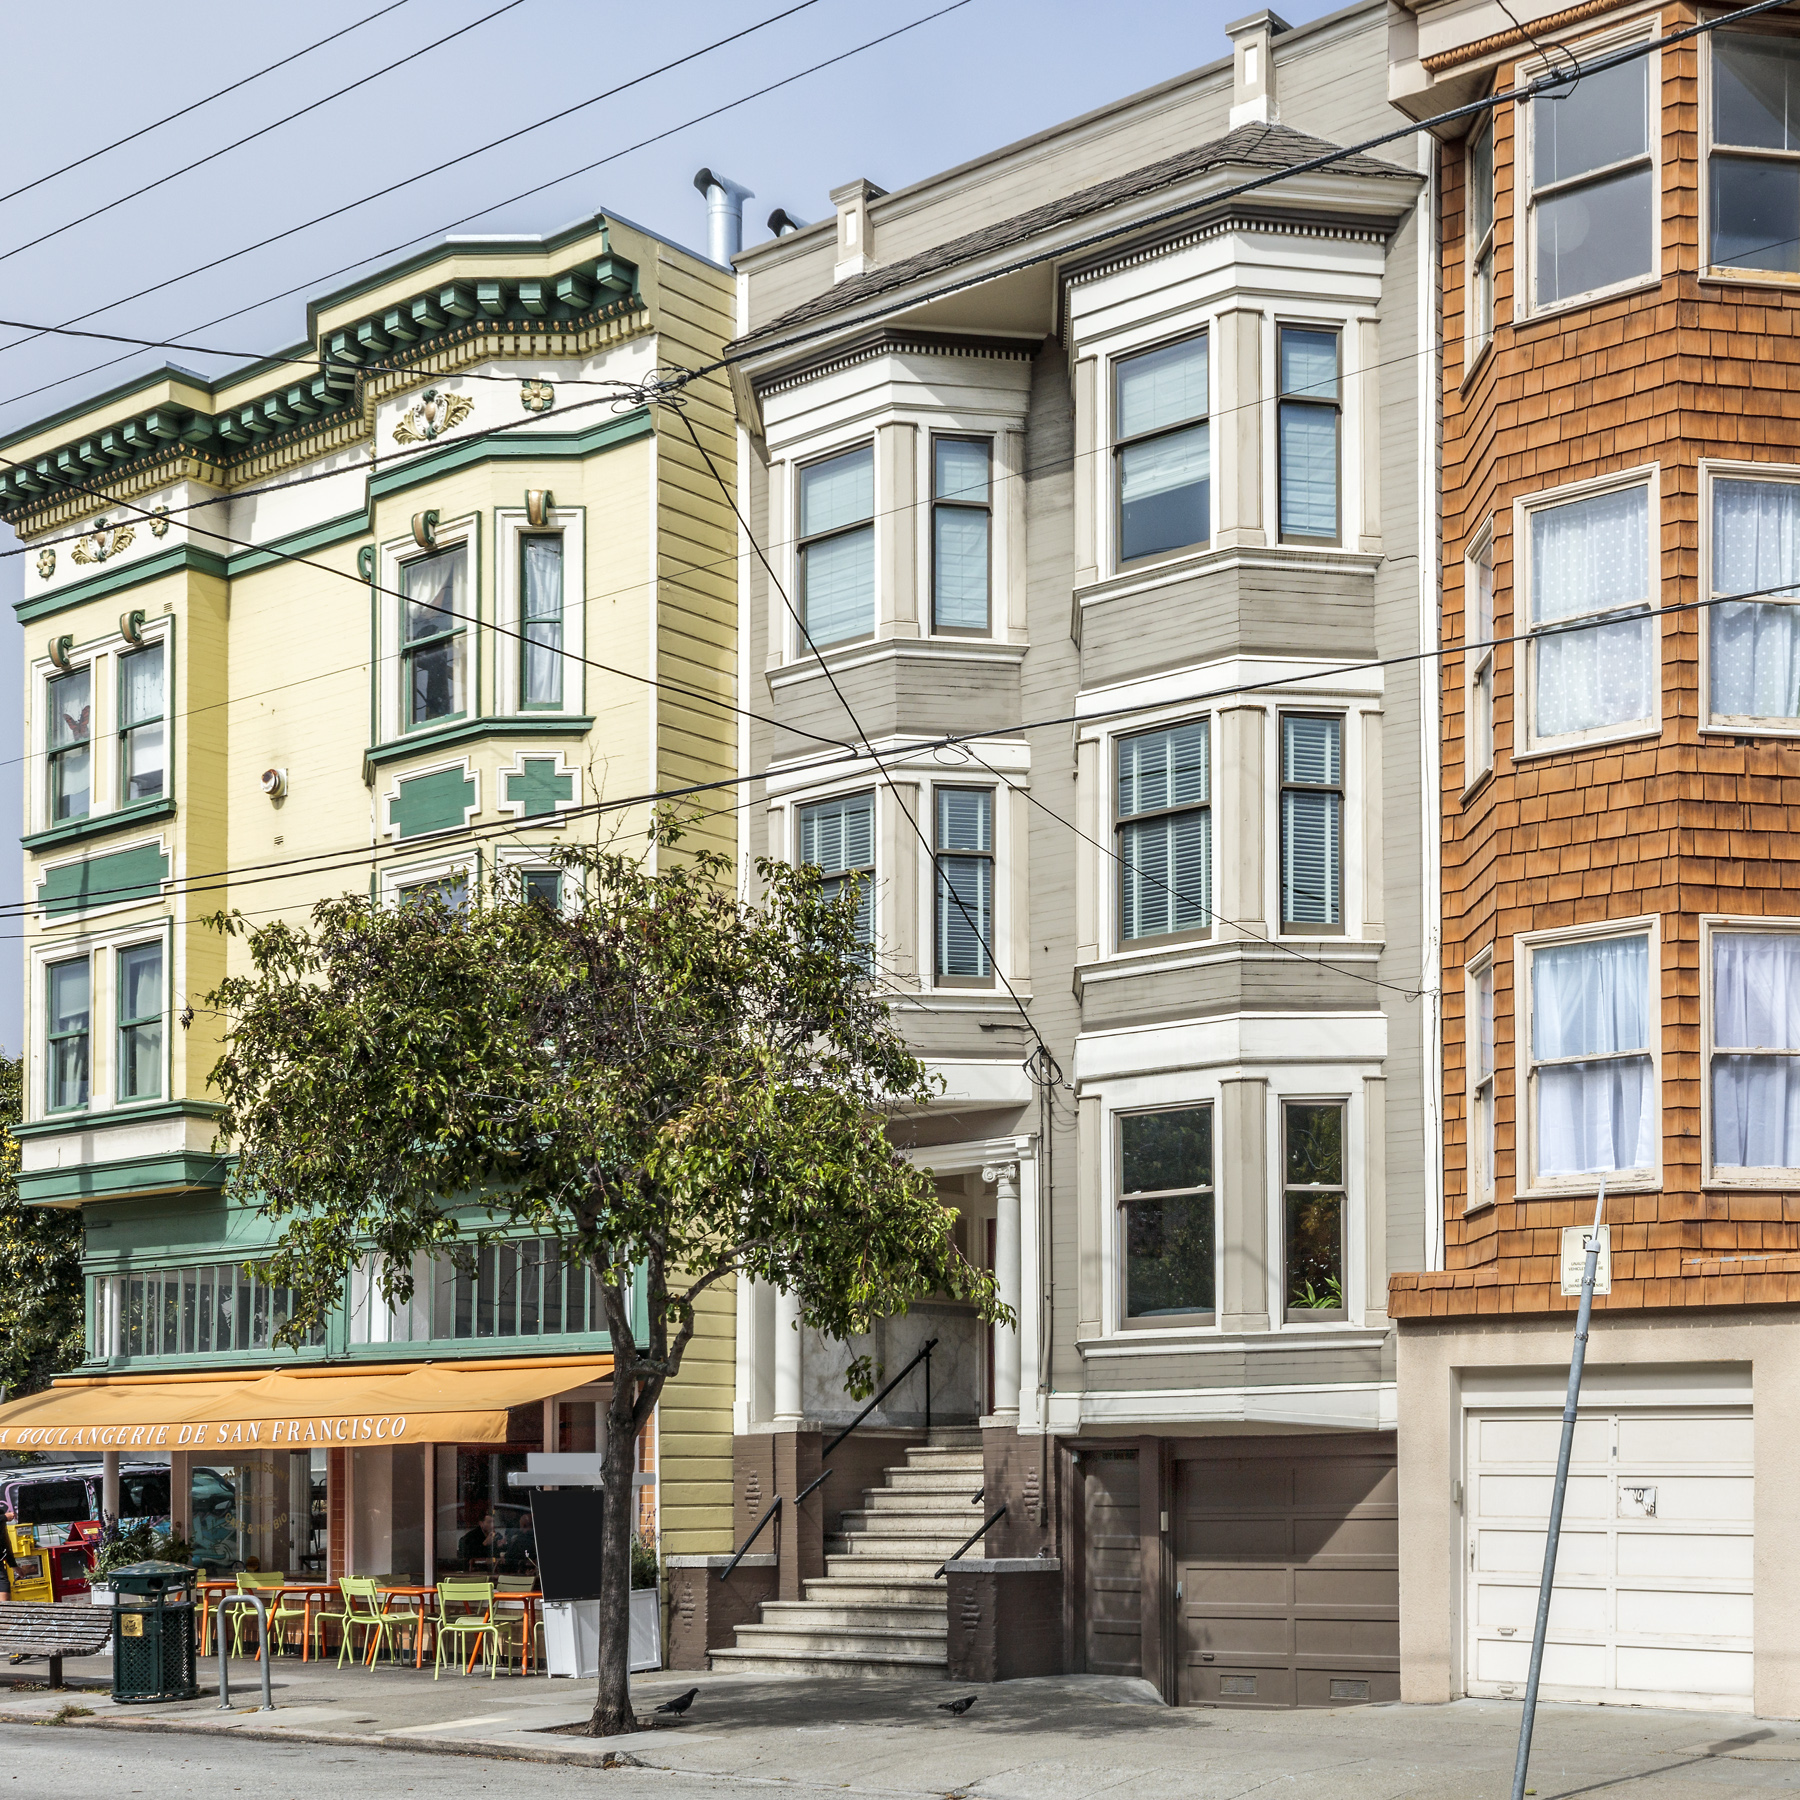 Cole Valley / Haight Ashbury State of the Market Report